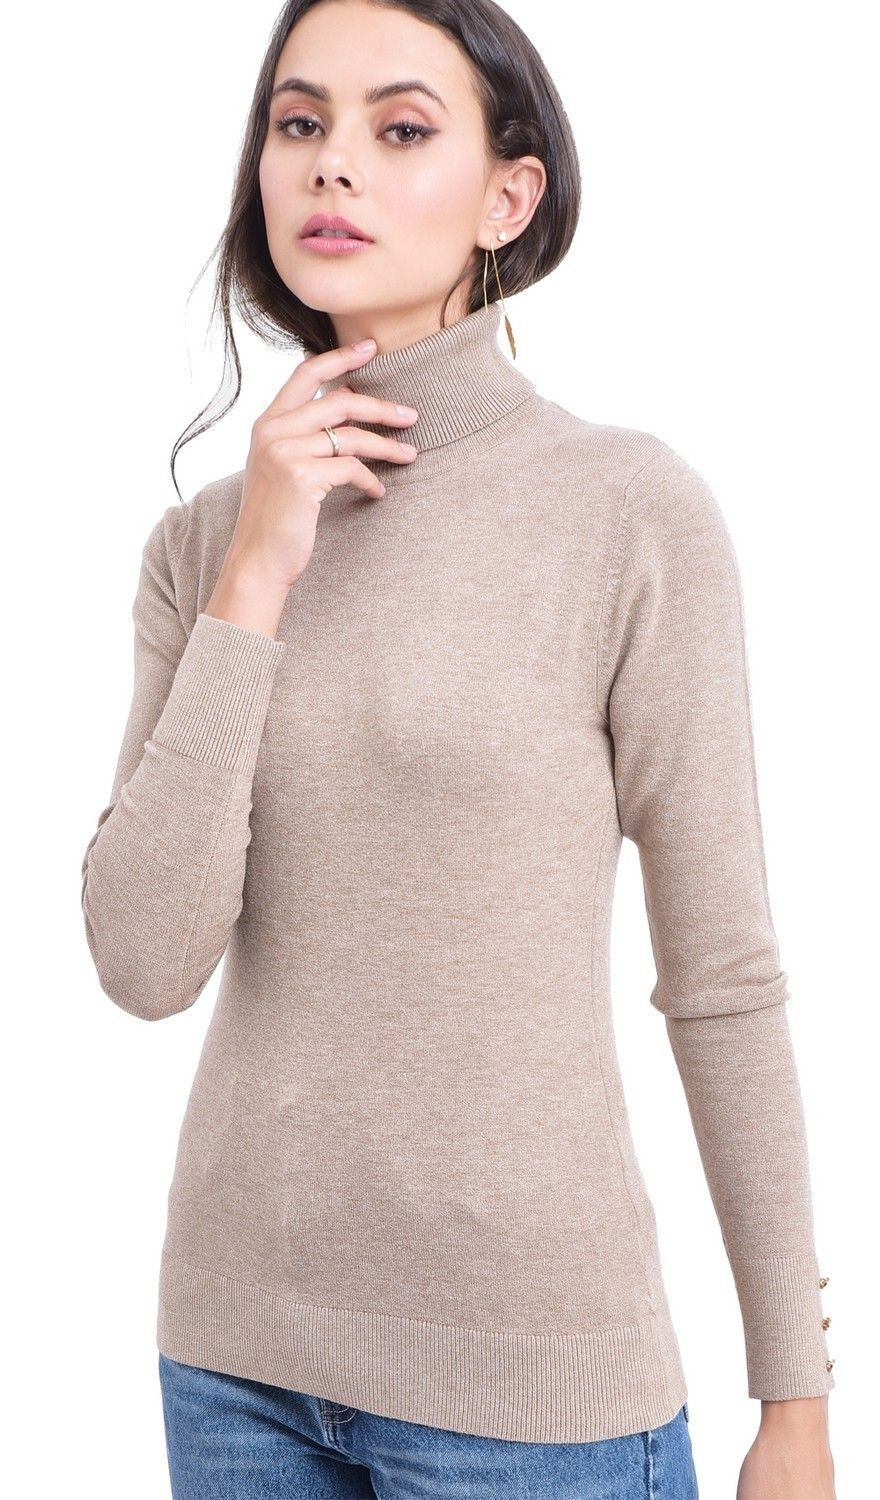 Assuili Roll Neck Sweater with Buttoned Sleeves in Beige